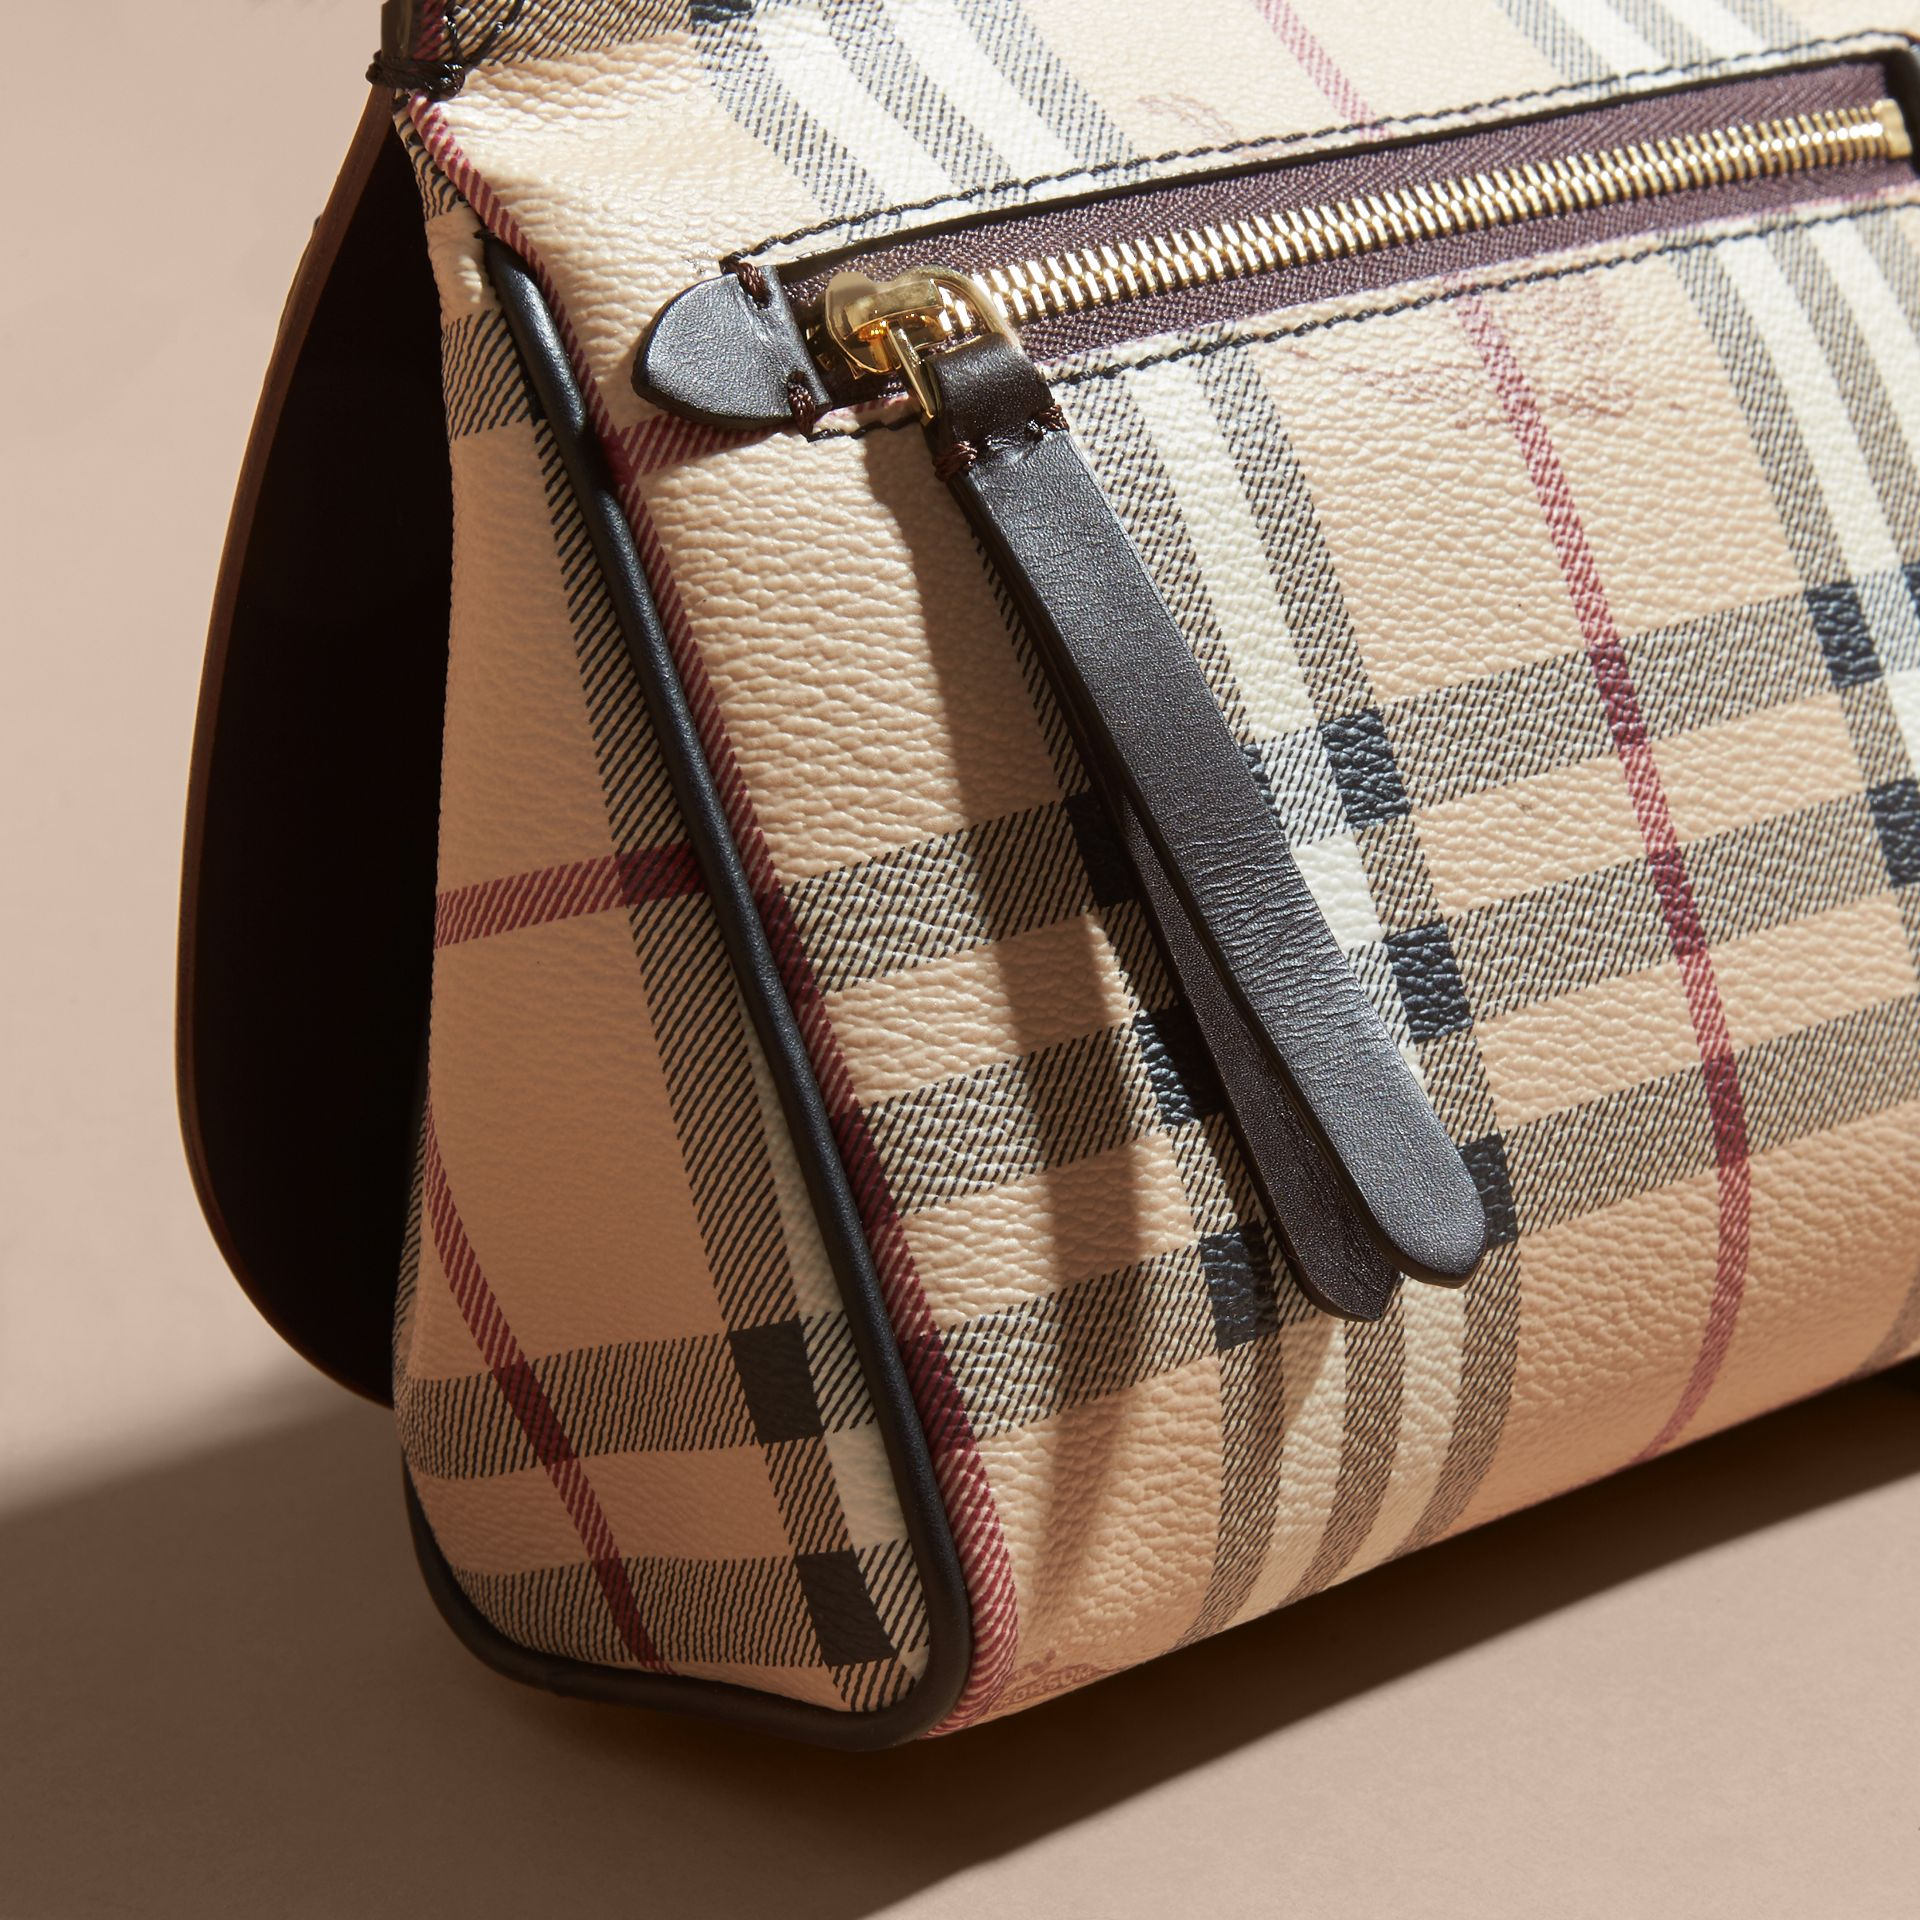 Sac The Baby Bridle en cuir et tissu Haymarket check (Marron Girofle Sombre) - Femme | Burberry - photo de la galerie 6